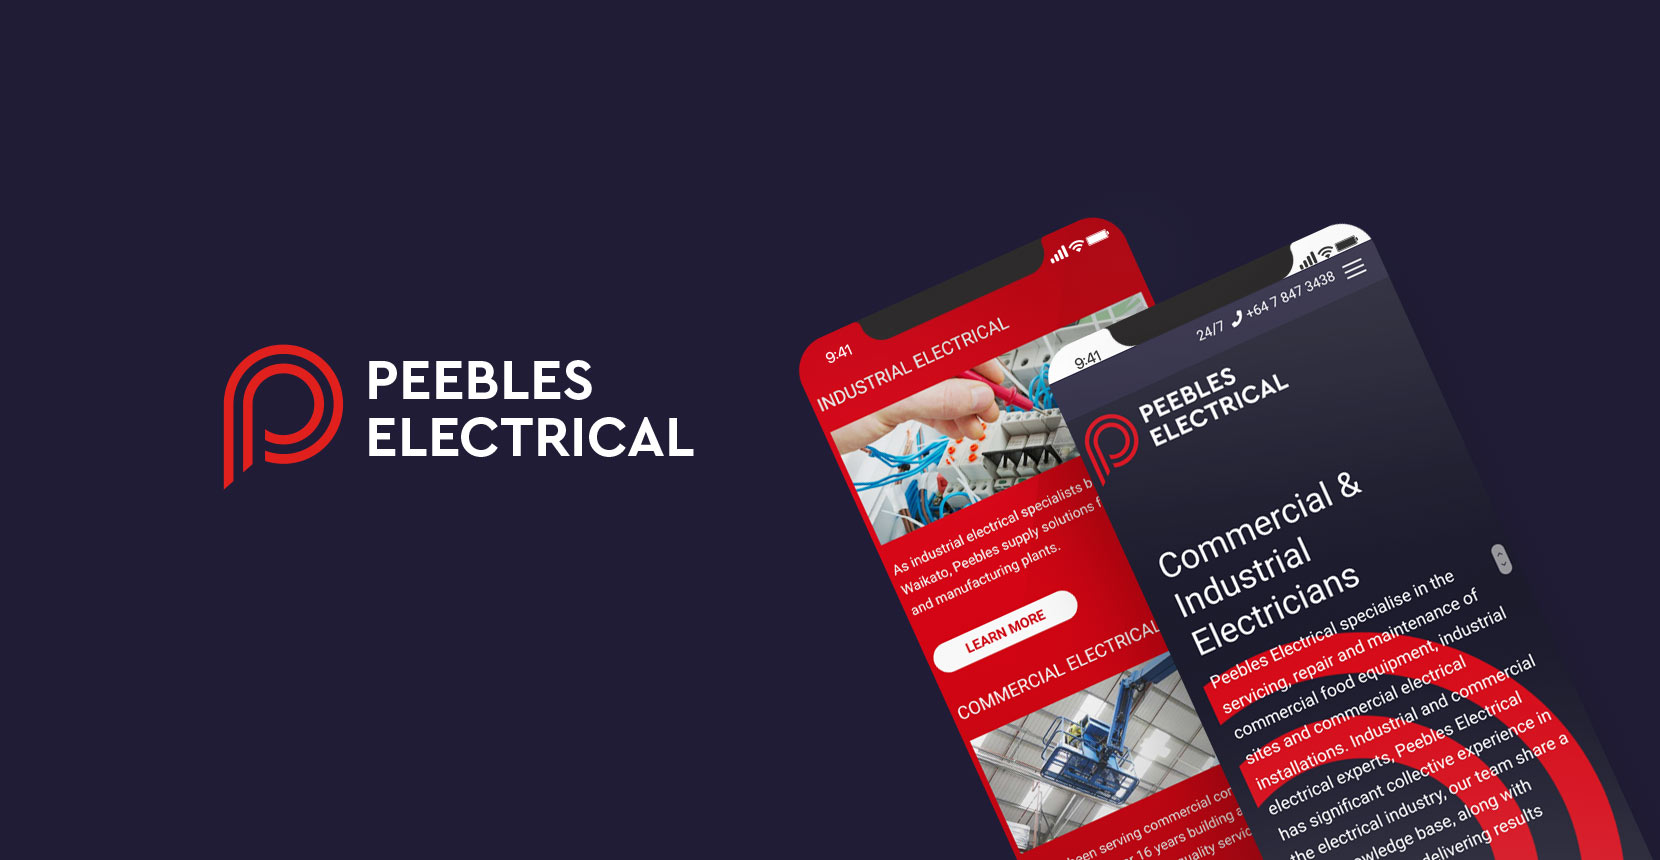 Peebles Electrical